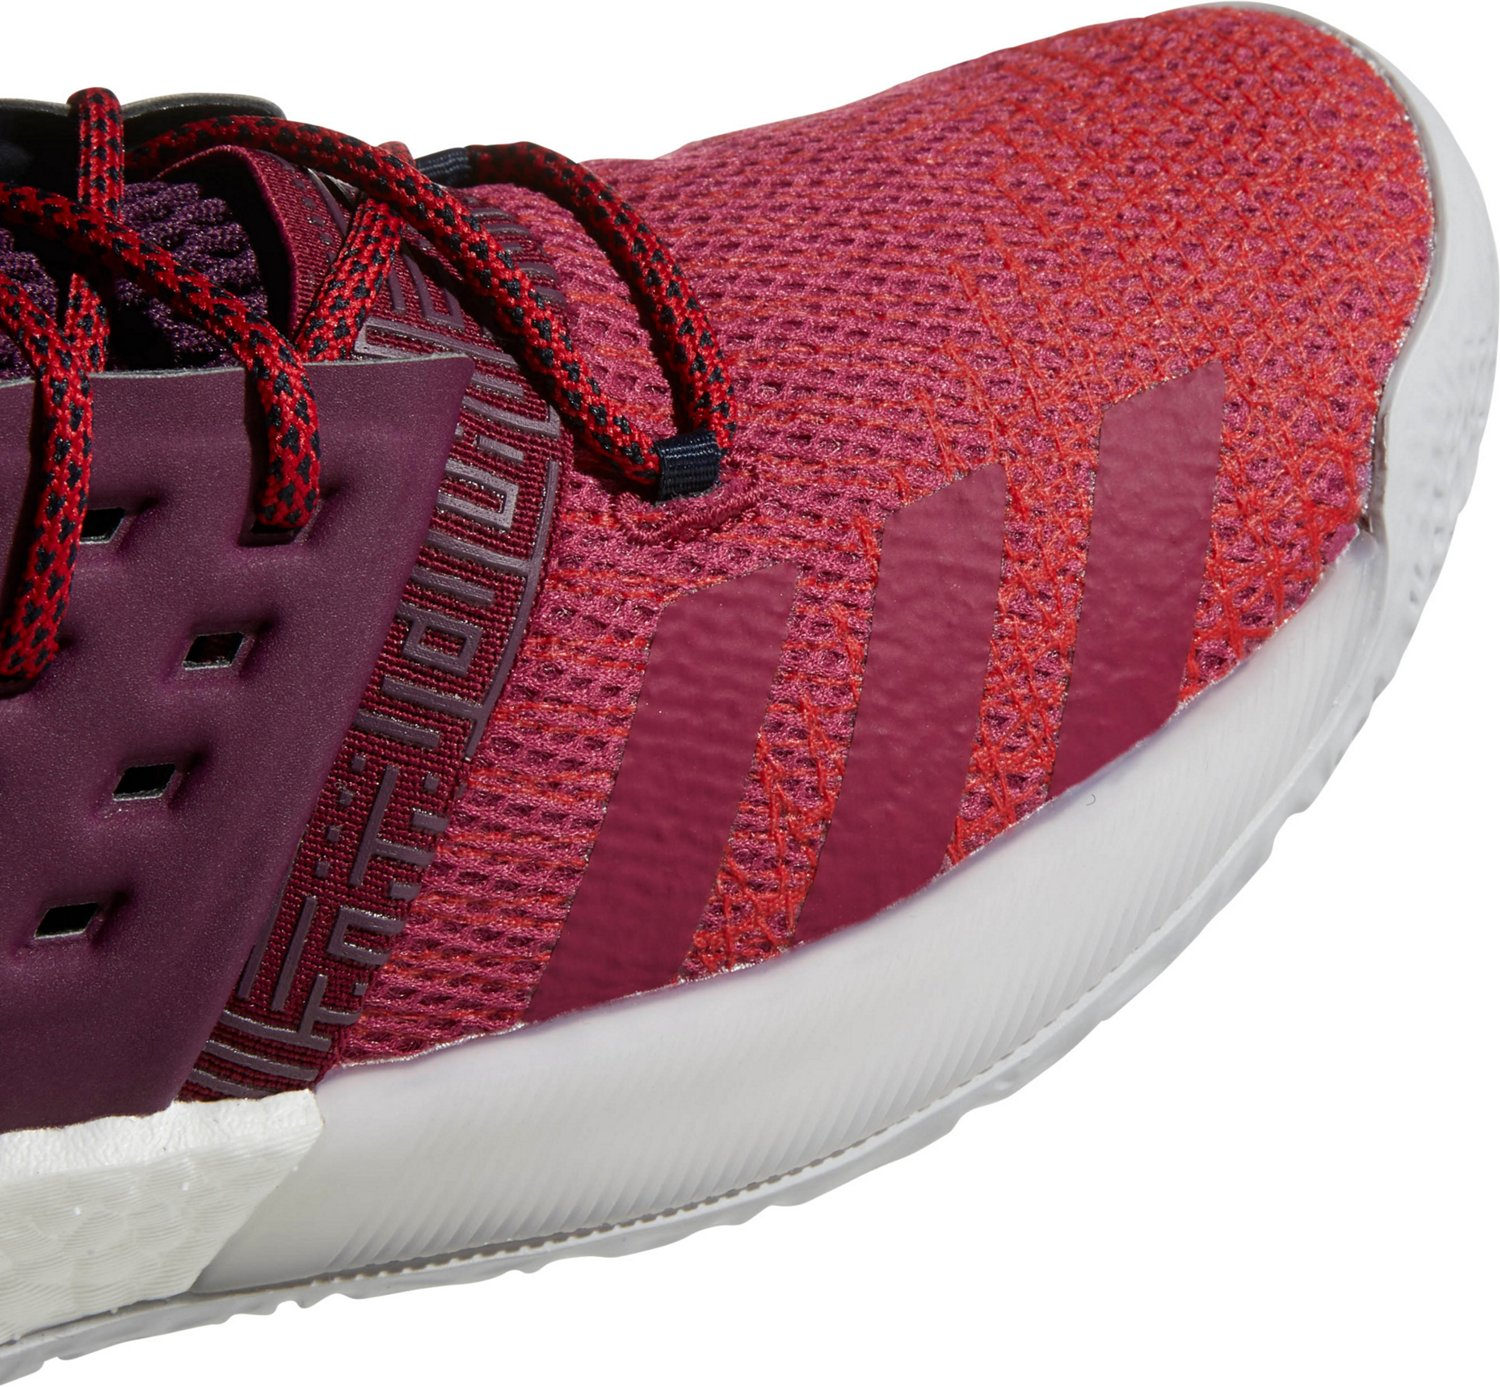 adidas Men's Harden Vol. 2 Basketball Shoes - view number 6